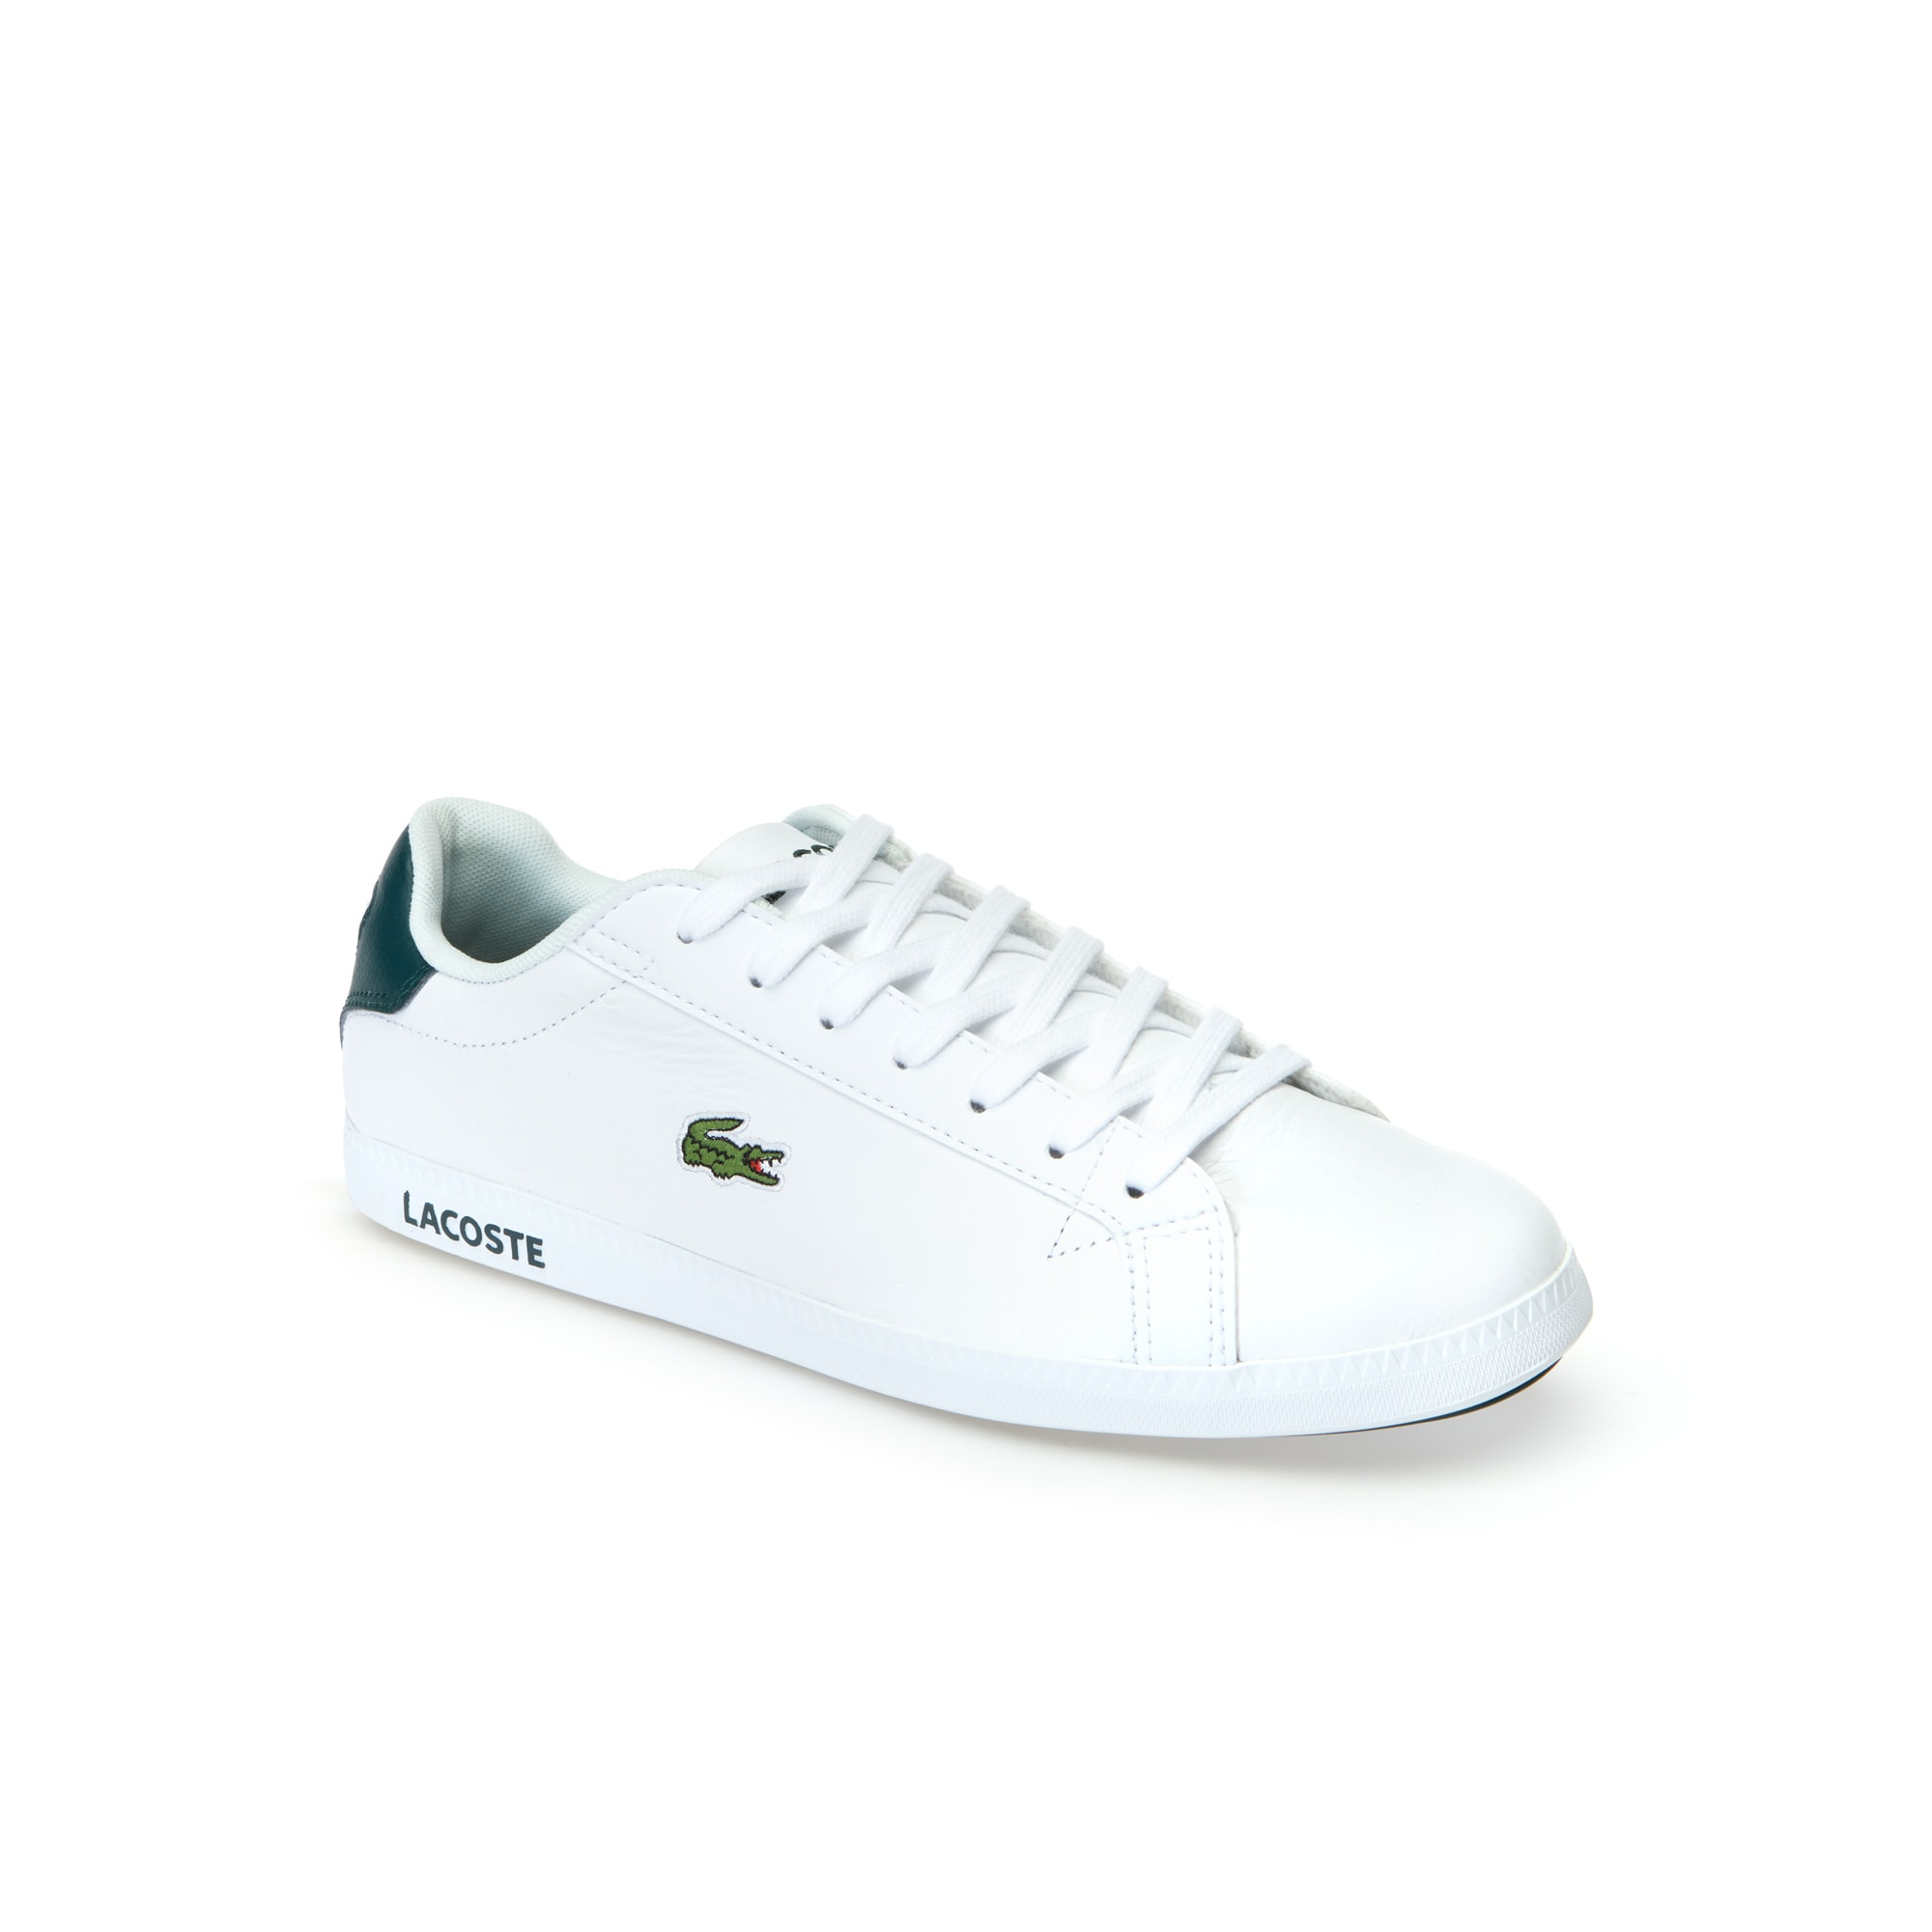 Lacoste Graduate trainers in white leather discount wiki kQFfm8